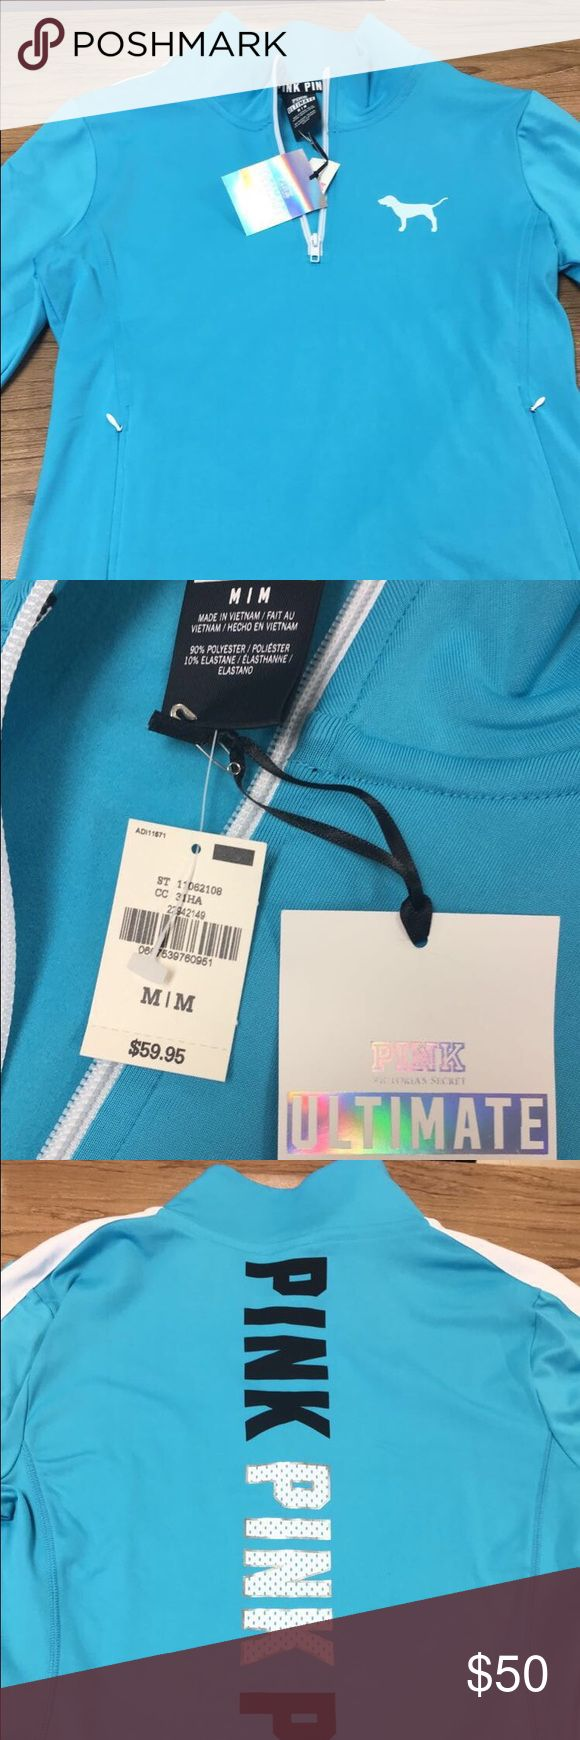 VS PINK ultimate deep zip NWT! size M. Never worn. Will trade for Nike Dri-Fit Black leggings, or other VS merchandise . Let me know ladies! Happy shopping :) PINK Victoria's Secret Tops Sweatshirts & Hoodies